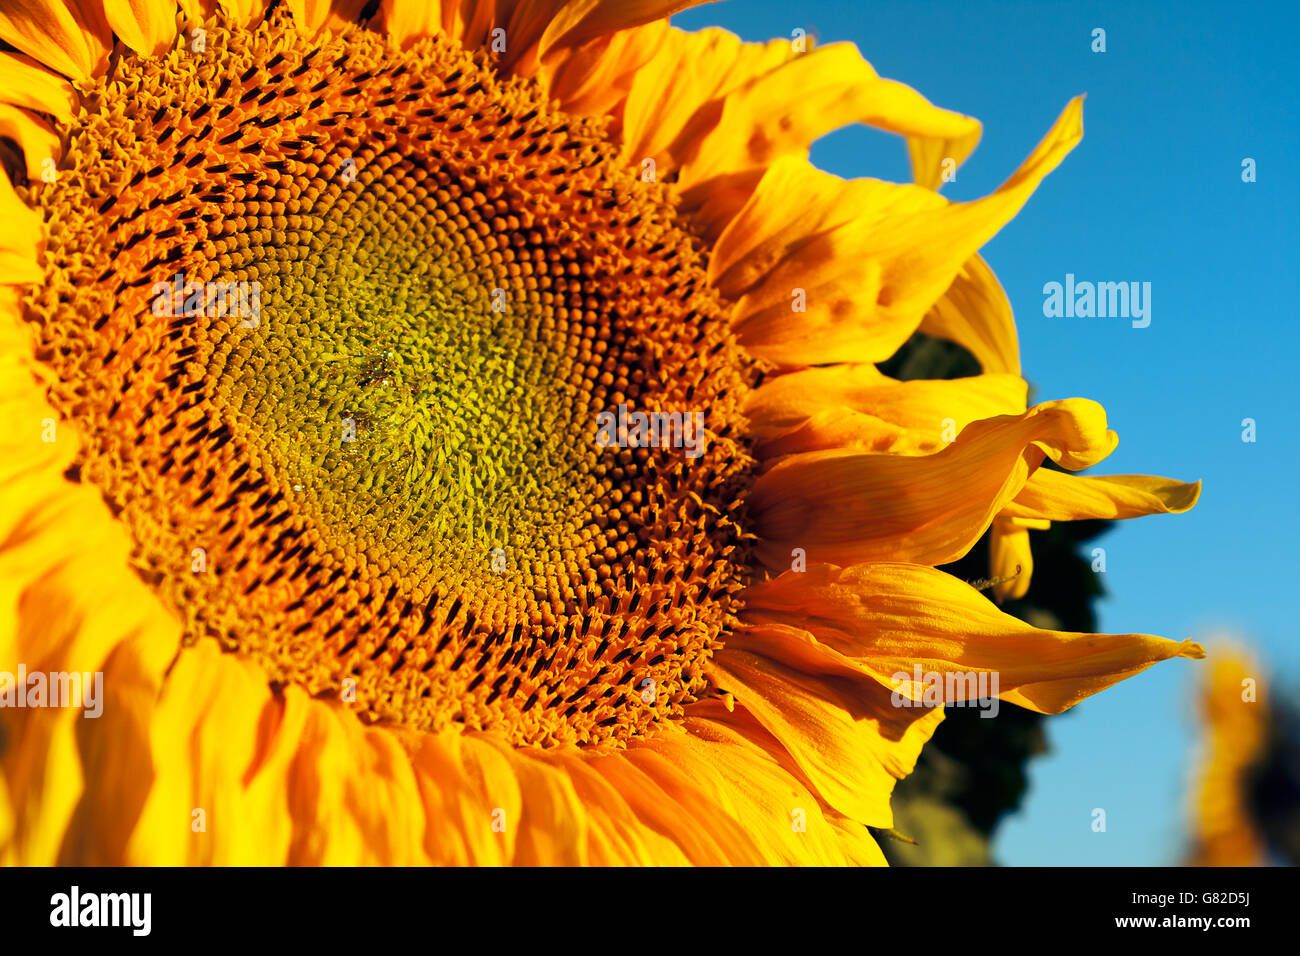 Sunflower large and yellow Stock Photo